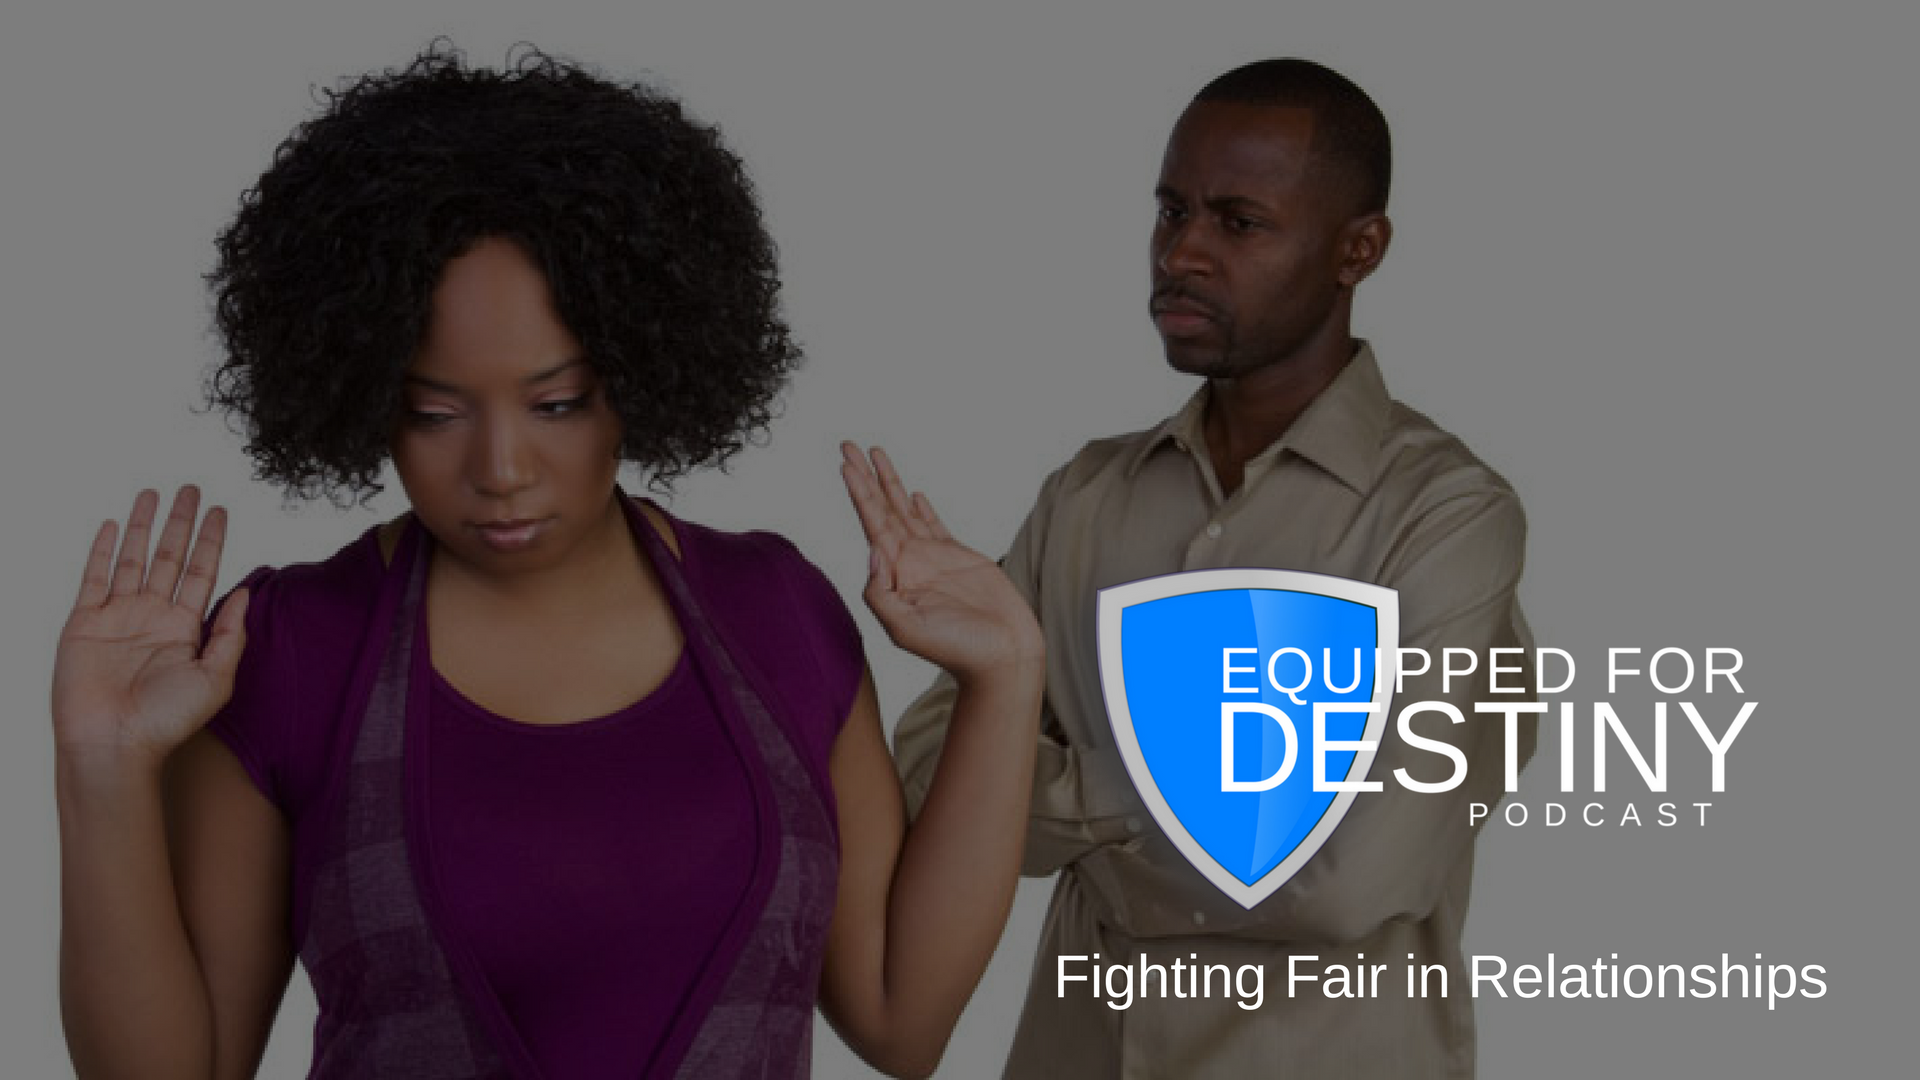 Fighting Fair in Relationships